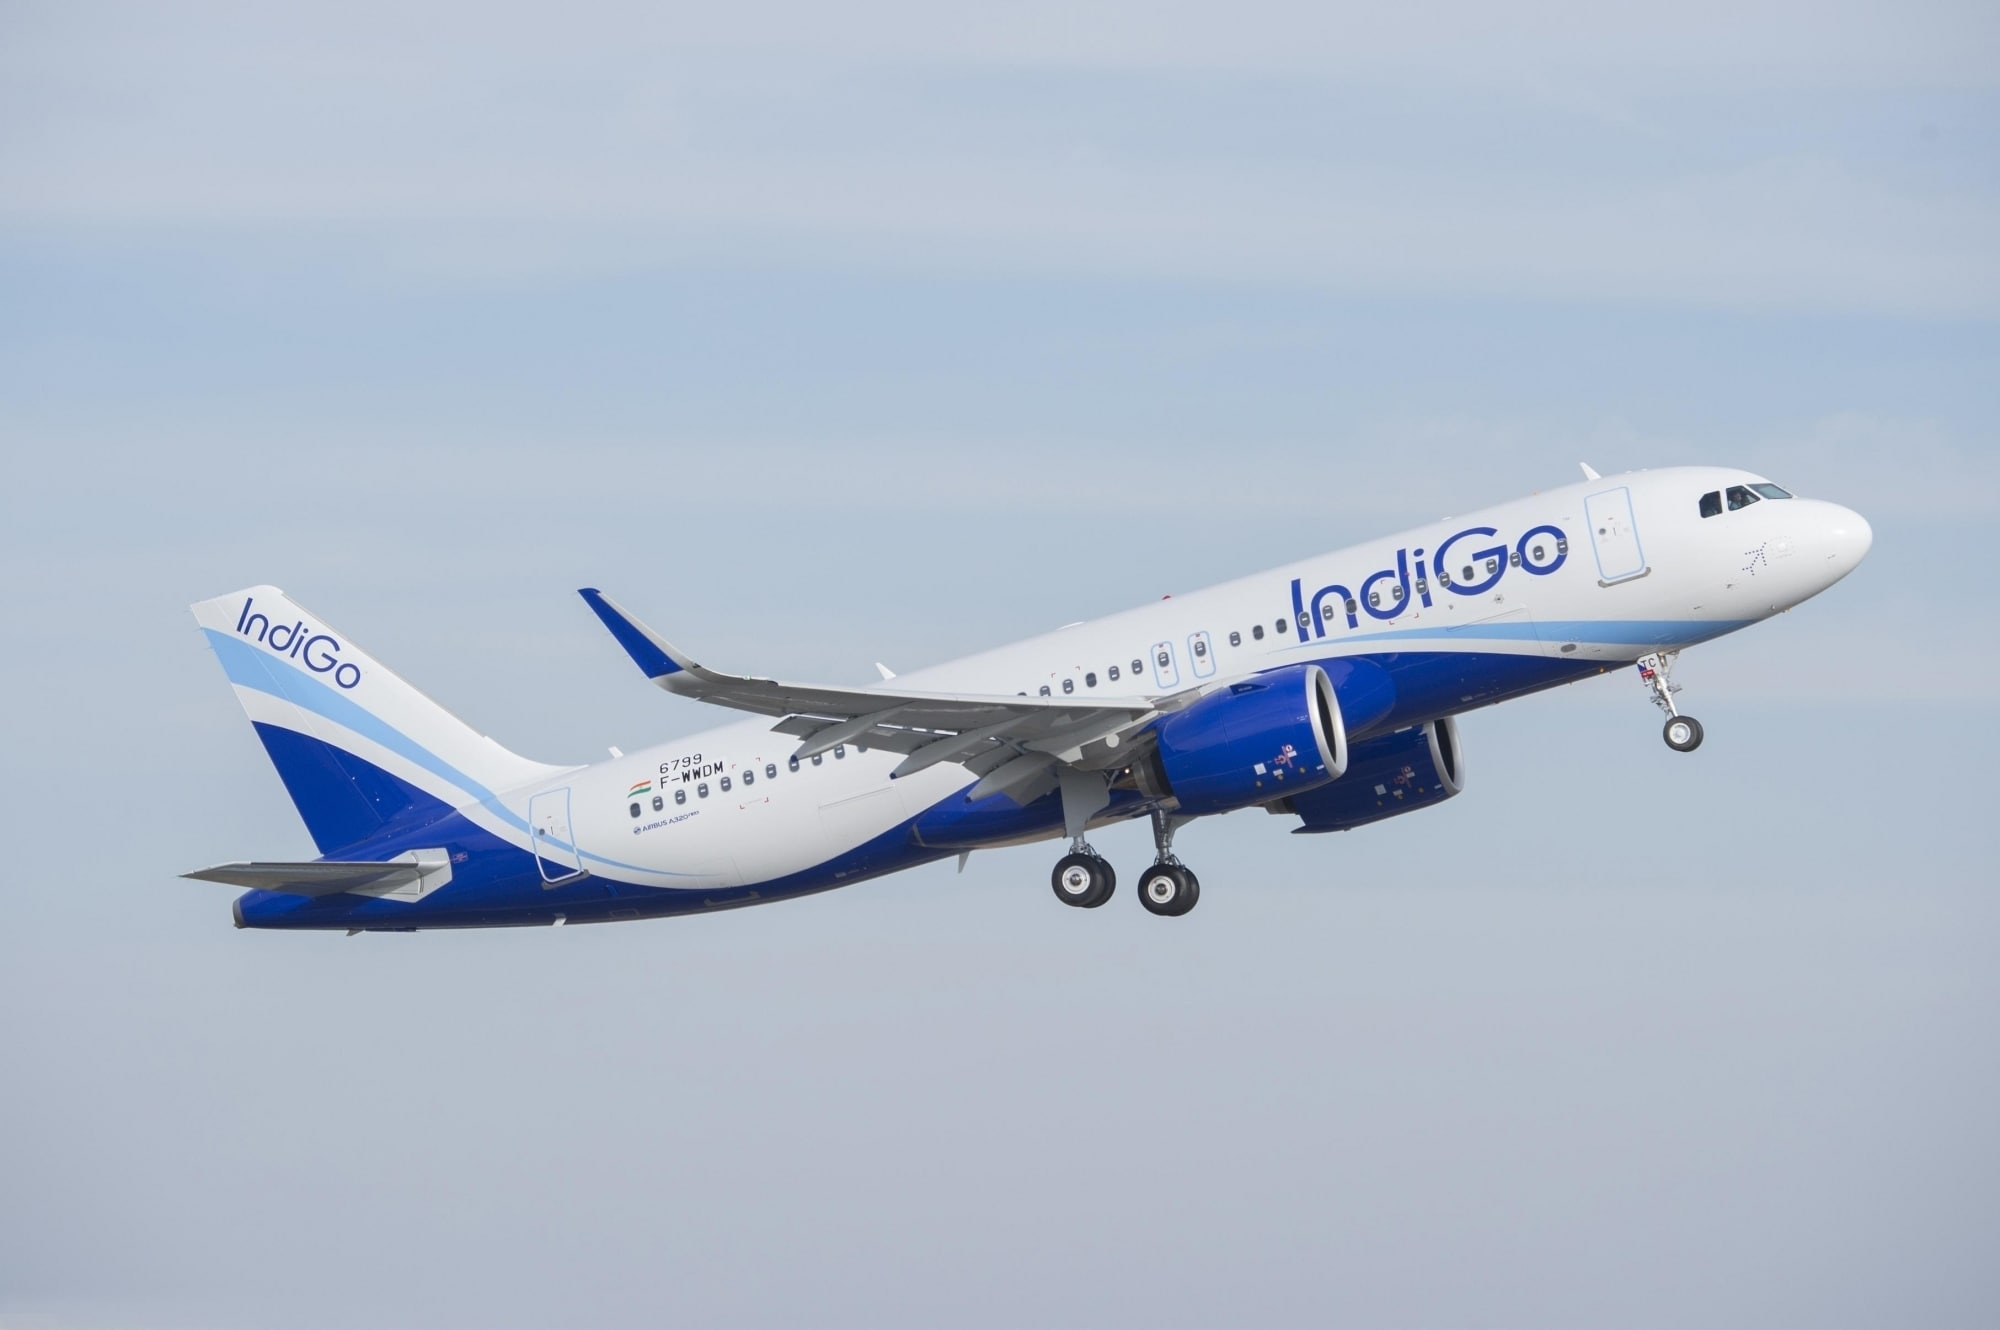 "IndiGo: It is appraisal season for pilots of market leader IndiGo after a gap of three years. The airline has increased salaries of all flight crew, cabin crew and ""eligible non-crew"" with effect from April 1, 2019. (Image: IANS)"